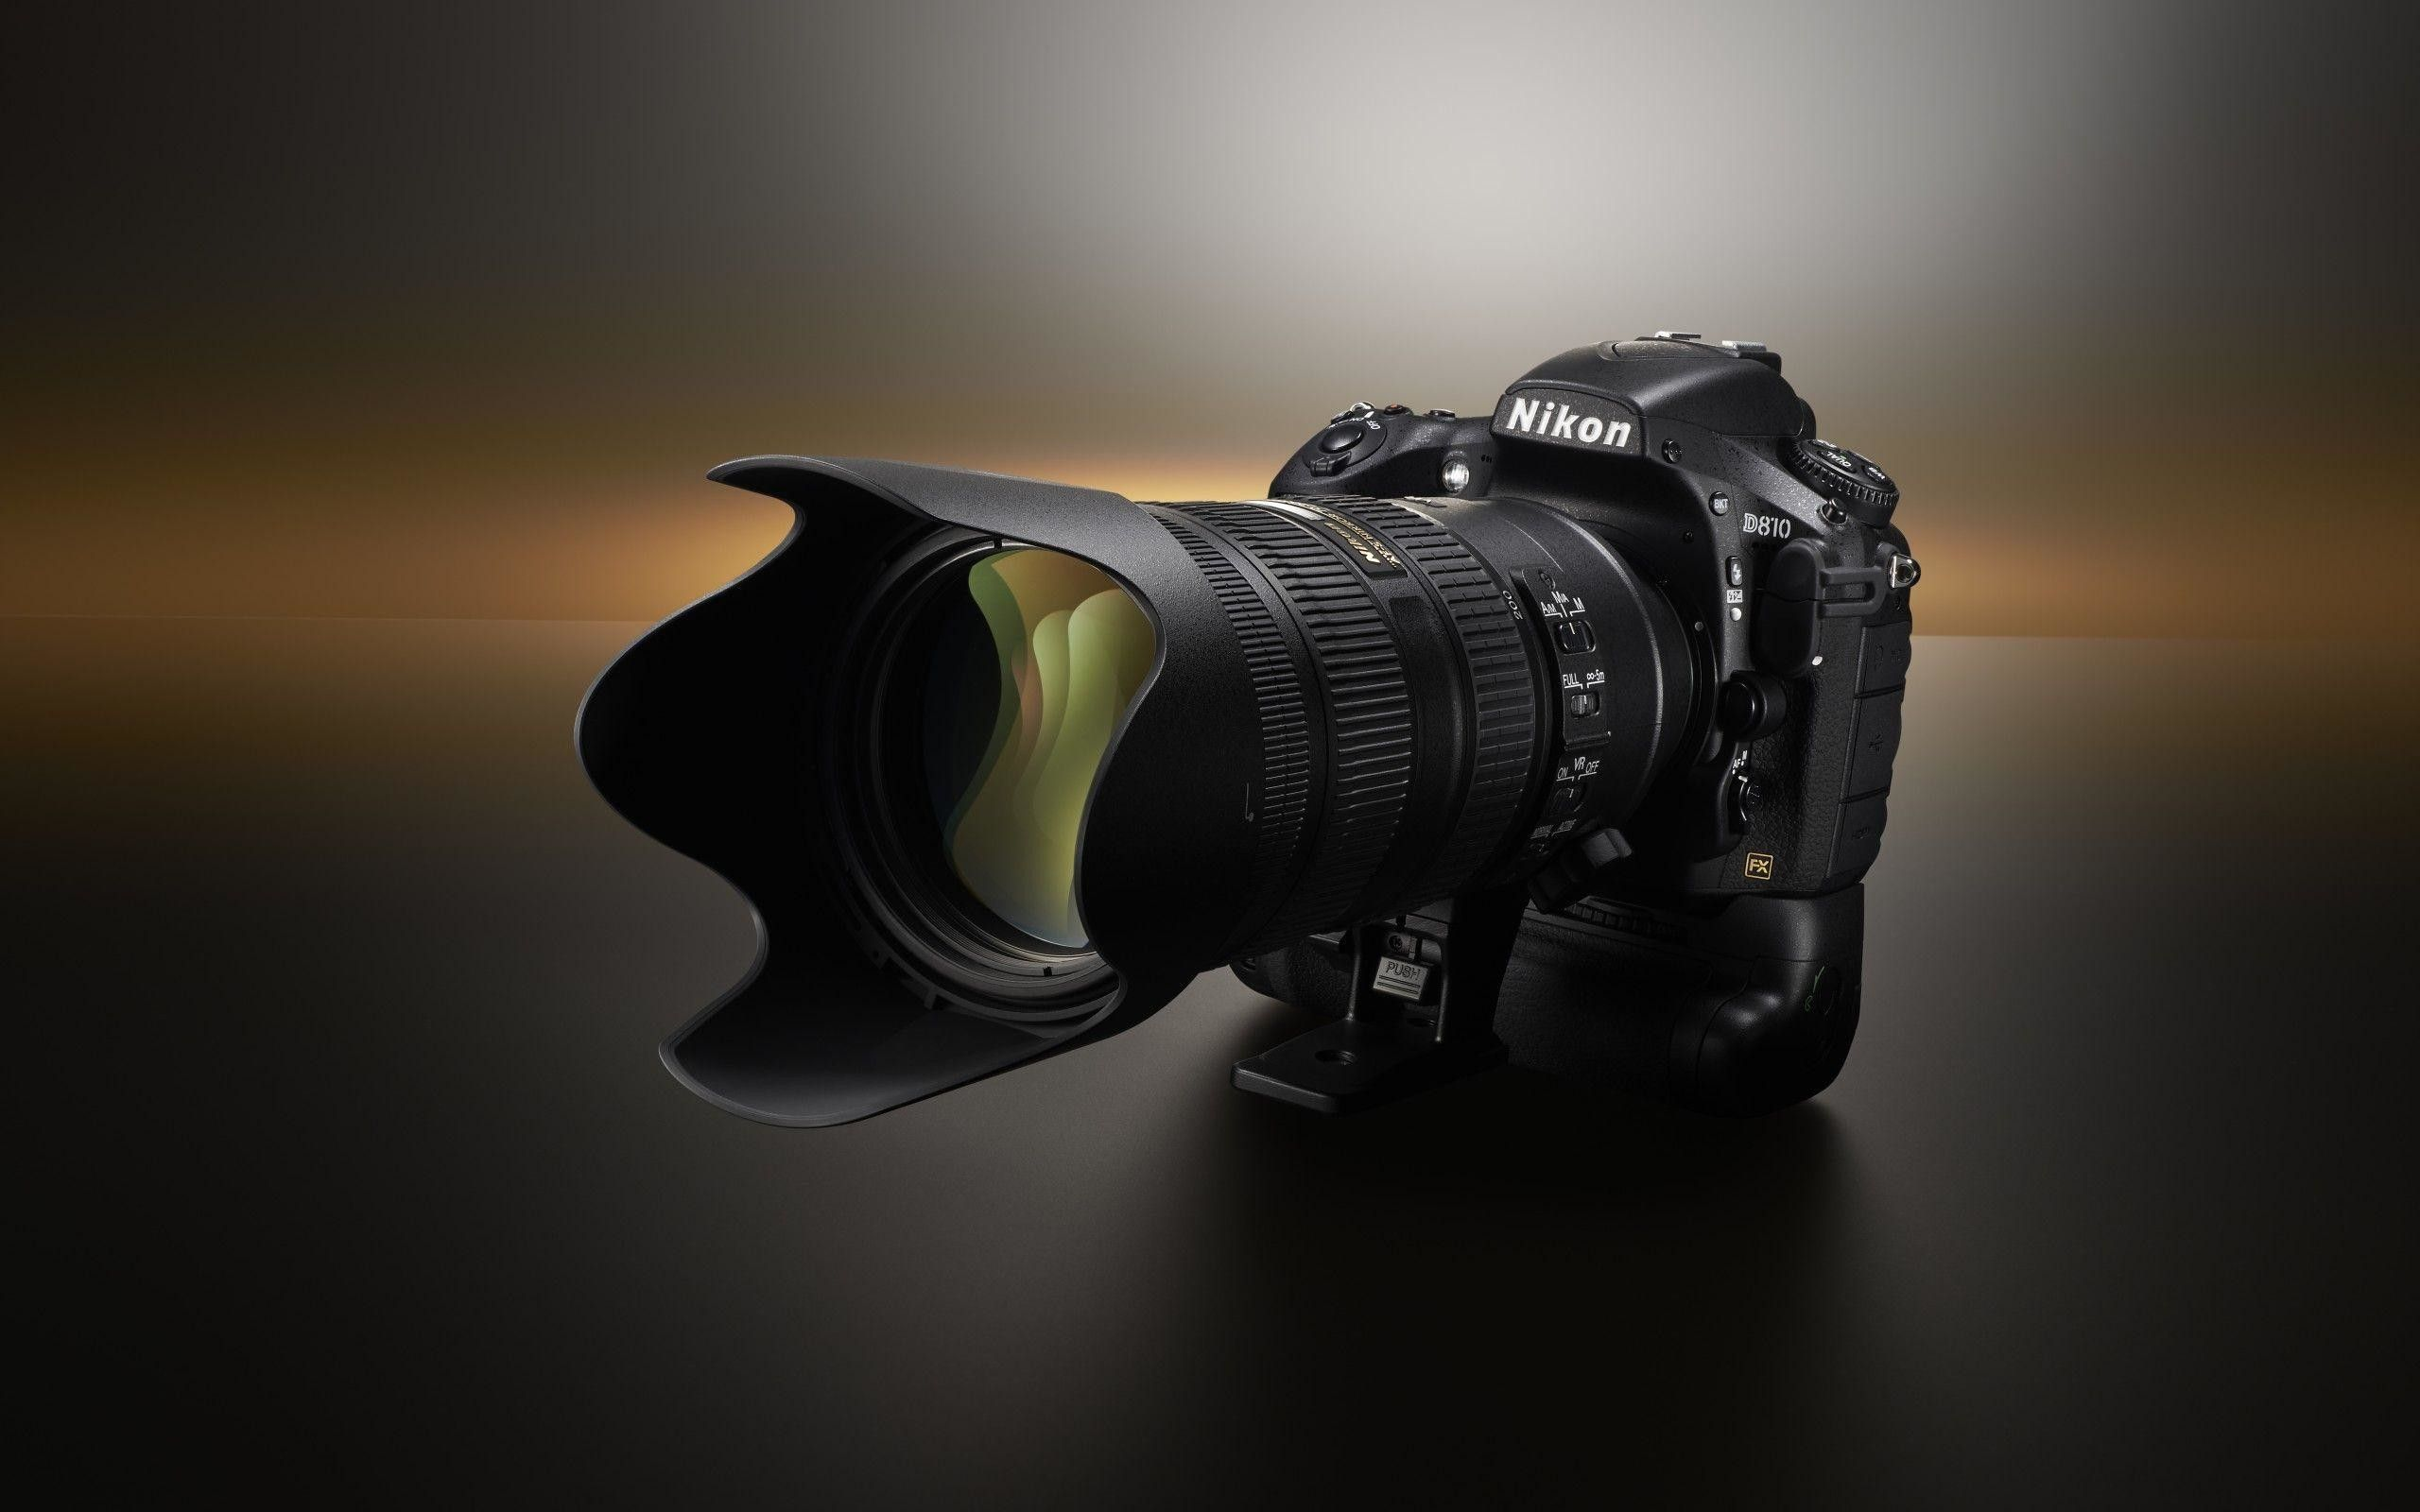 2560x1600 Canon Wallpapers 68 Images Best Camera For Photography Best Camera Dslr Camera